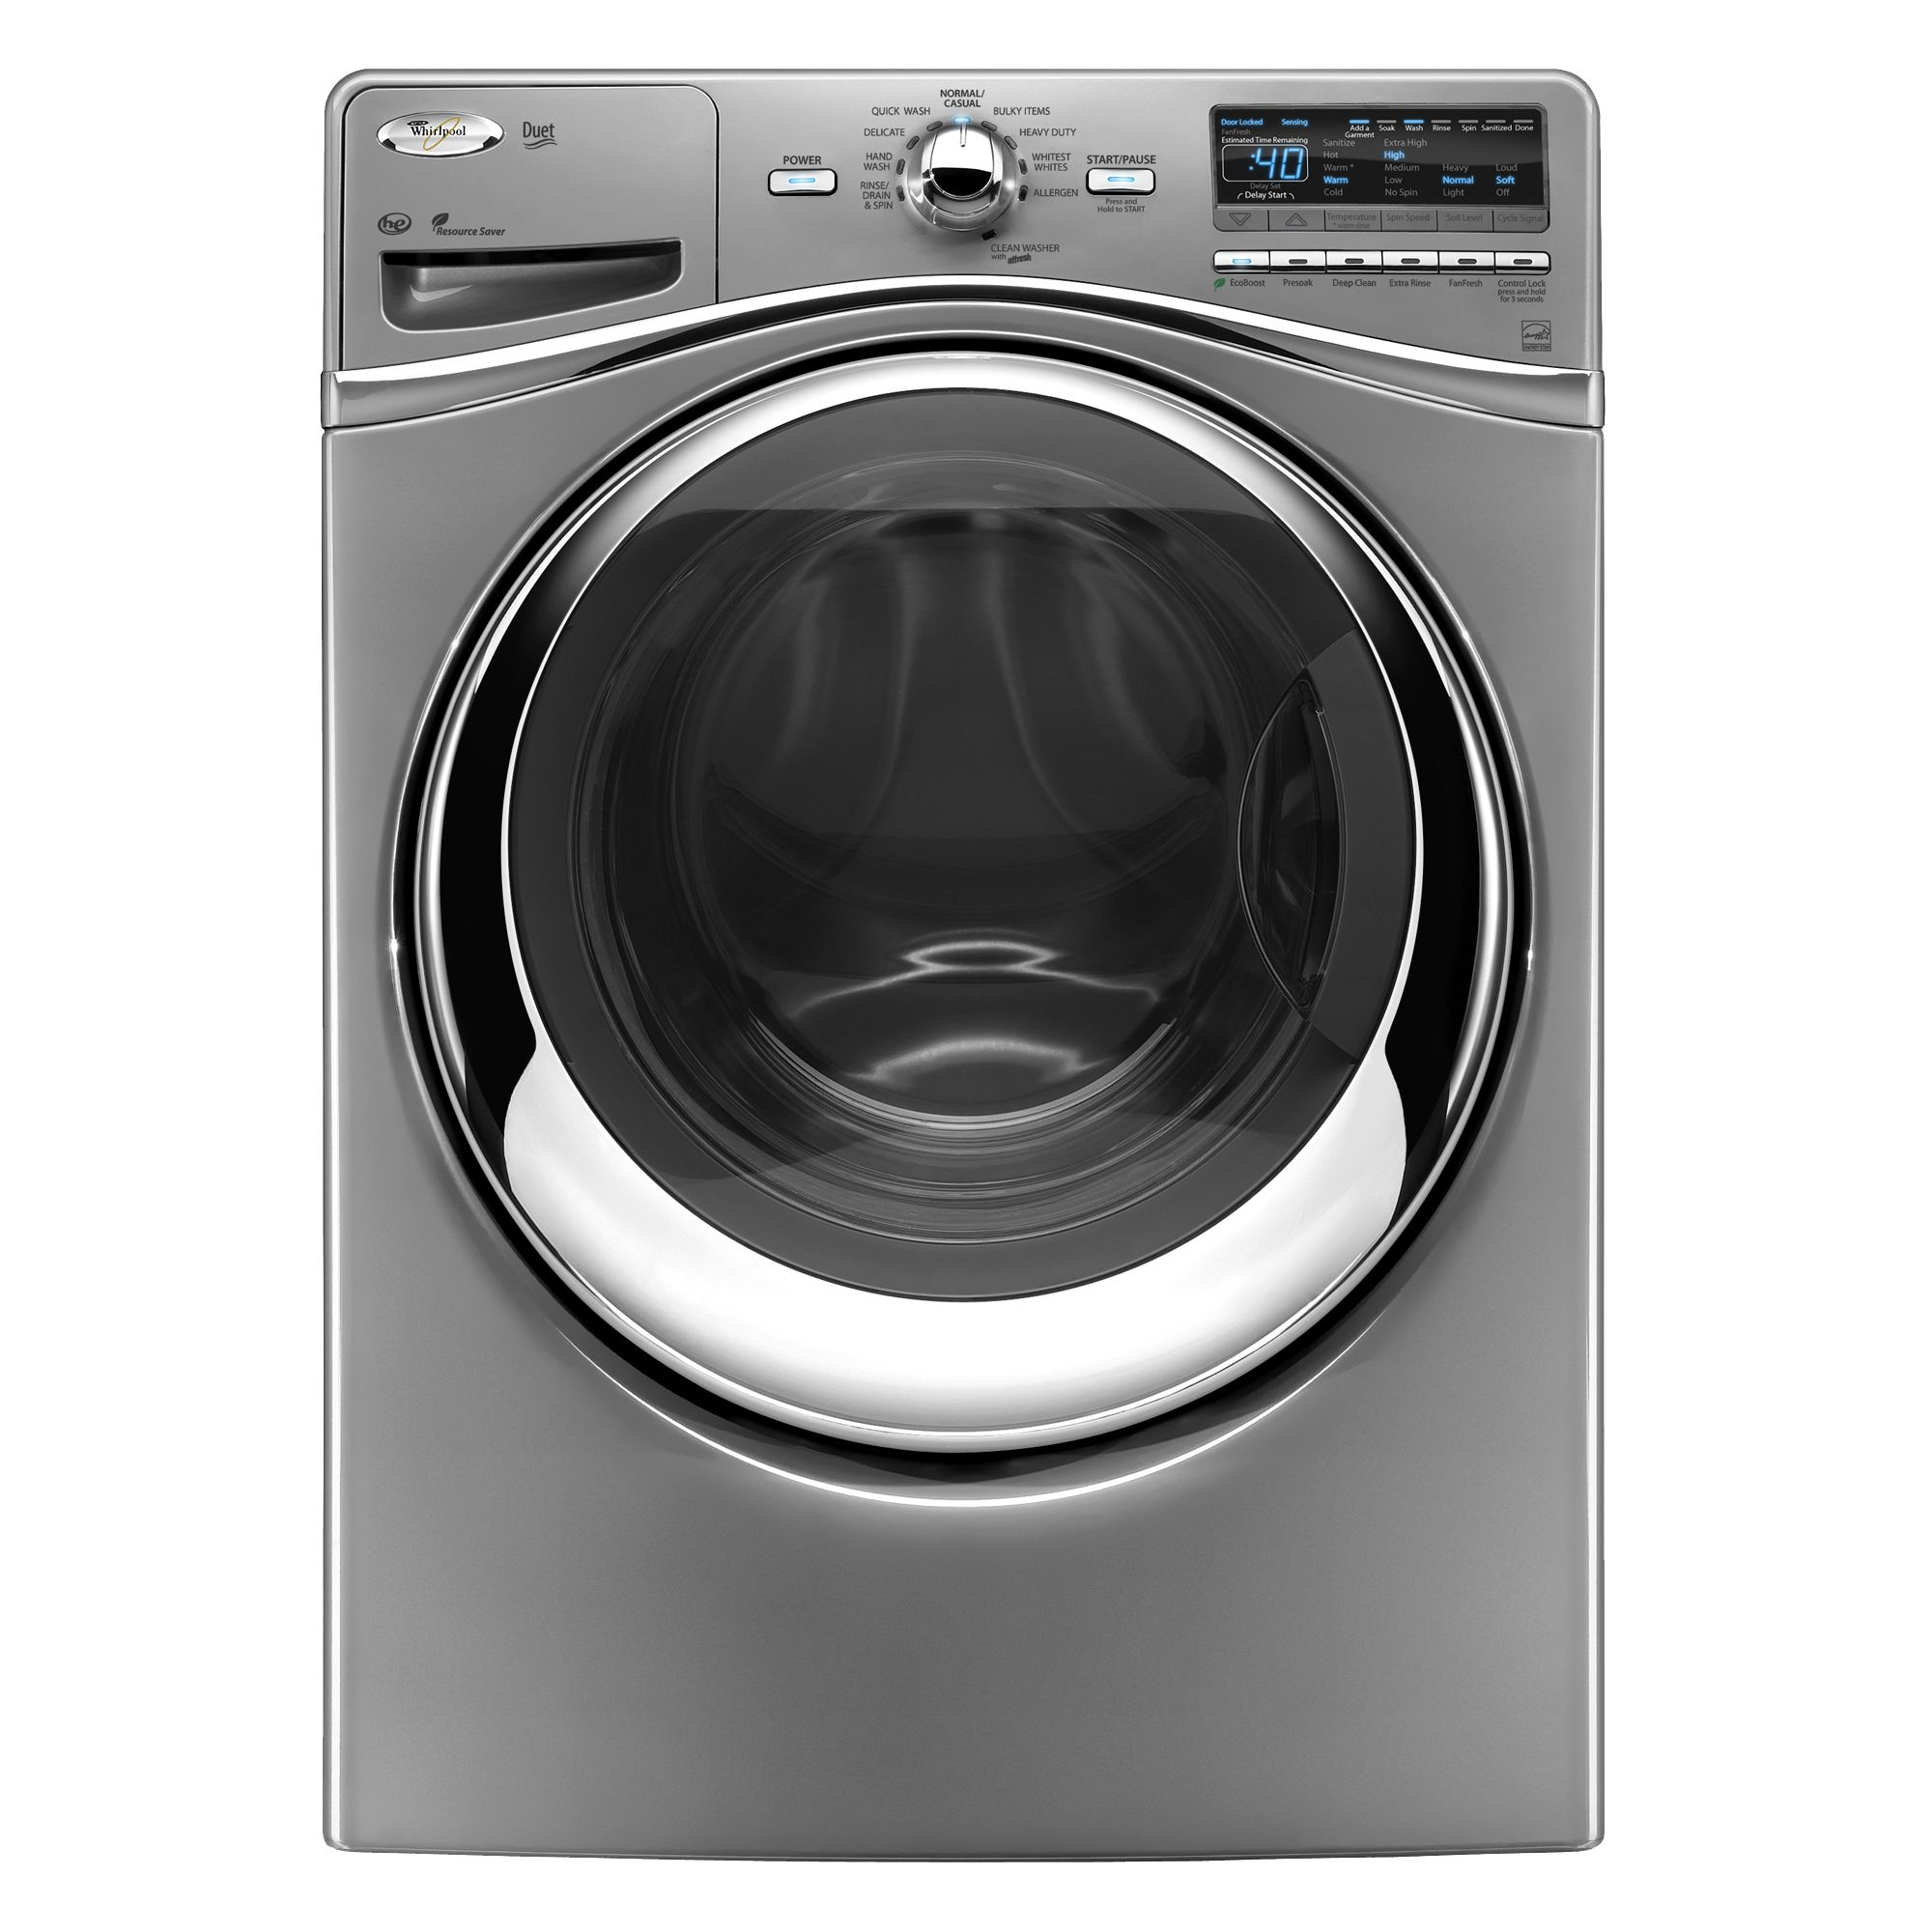 Duet-Premium-4-3-cu-ft-Front-Load-Washer